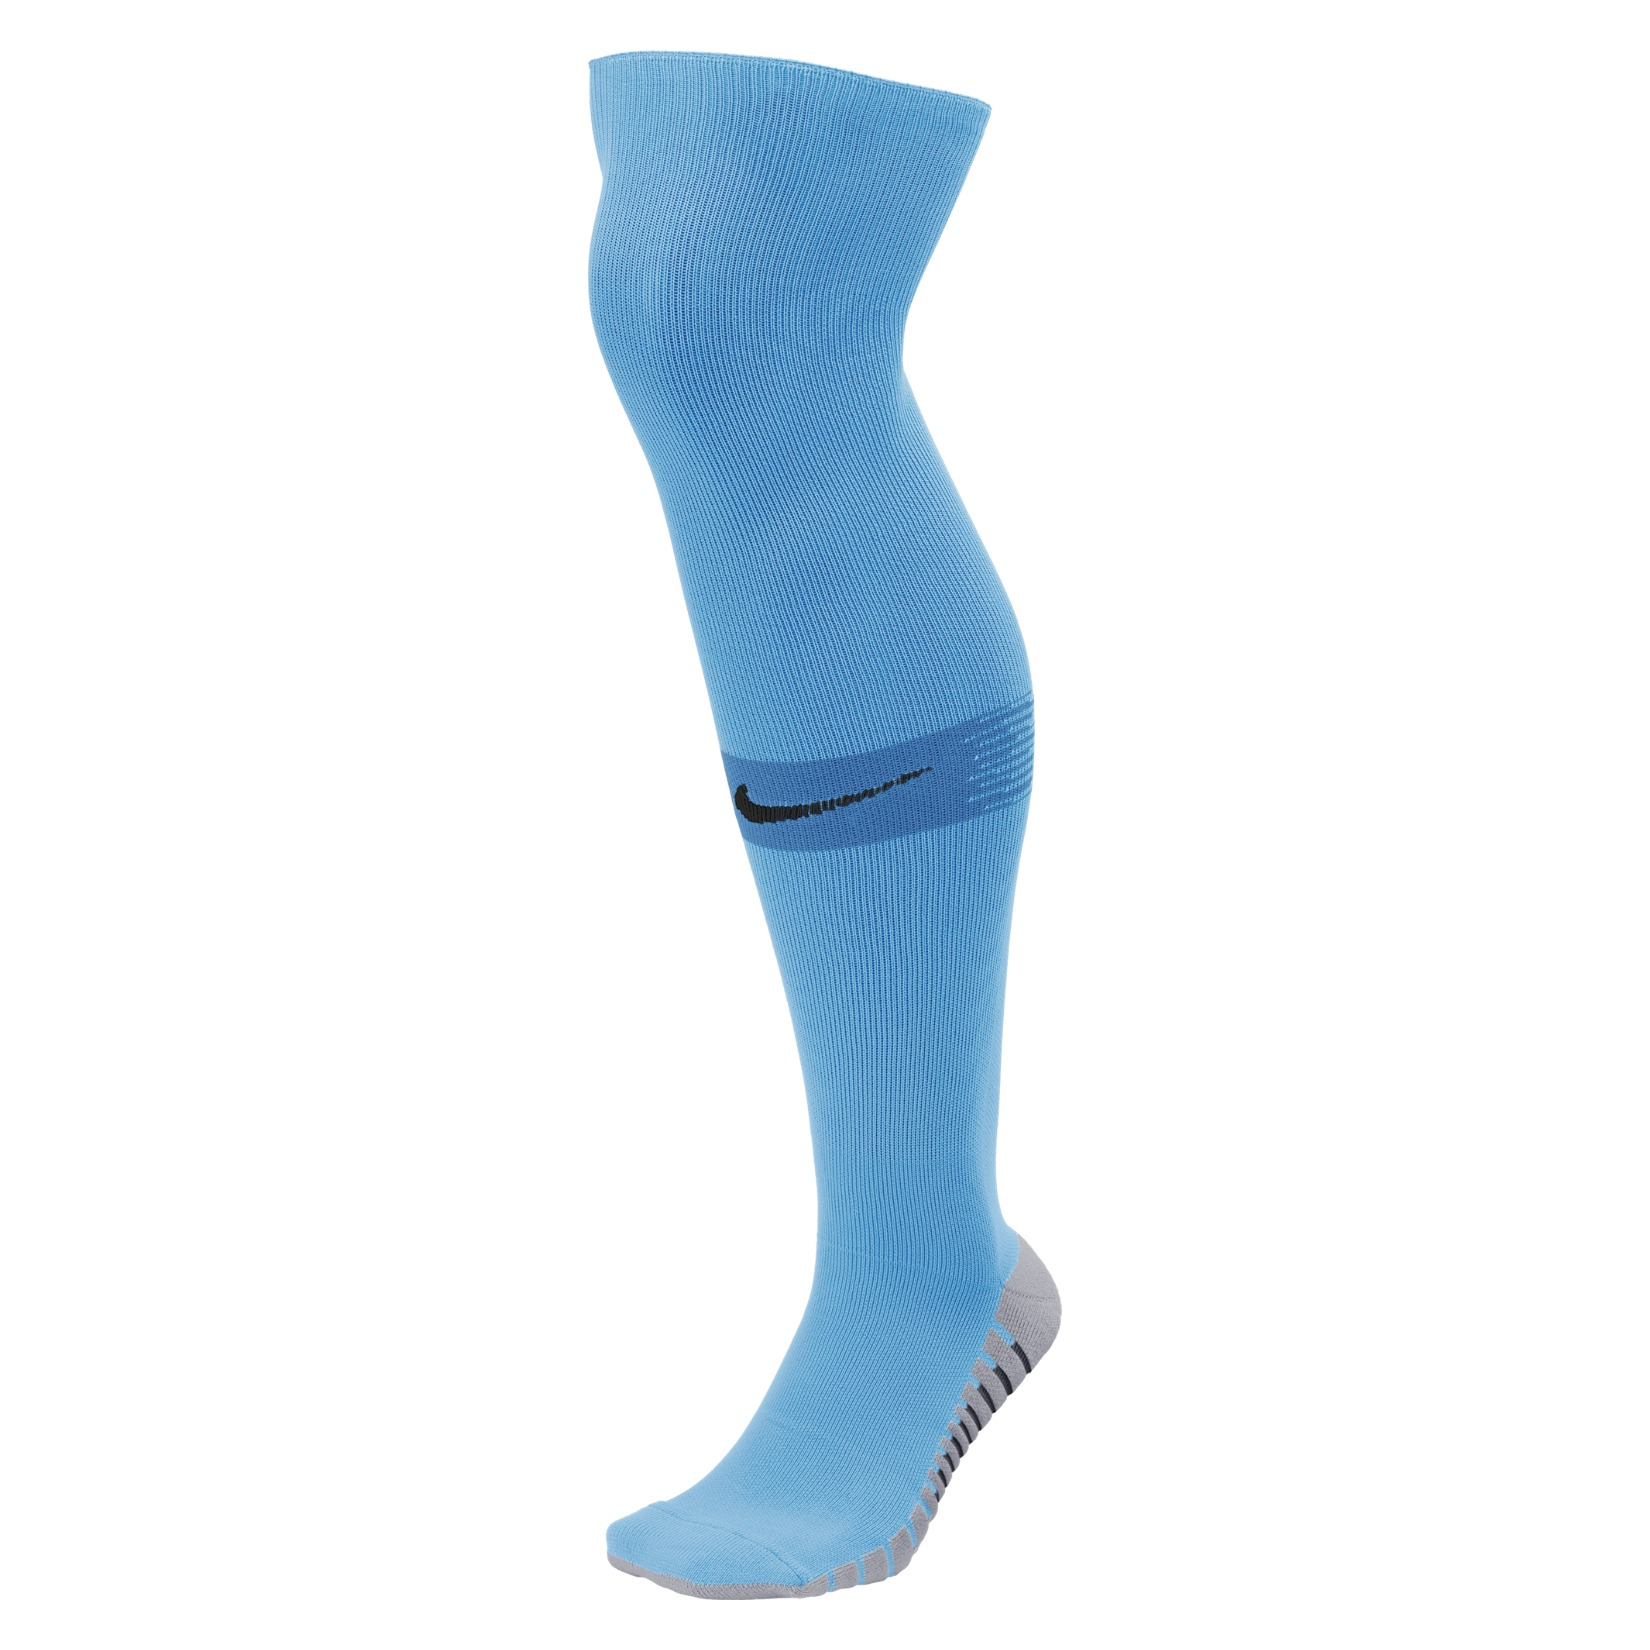 Nike Team Matchfit Over-the-calf Socks University Blue-Italy Blue-Midnight Navy